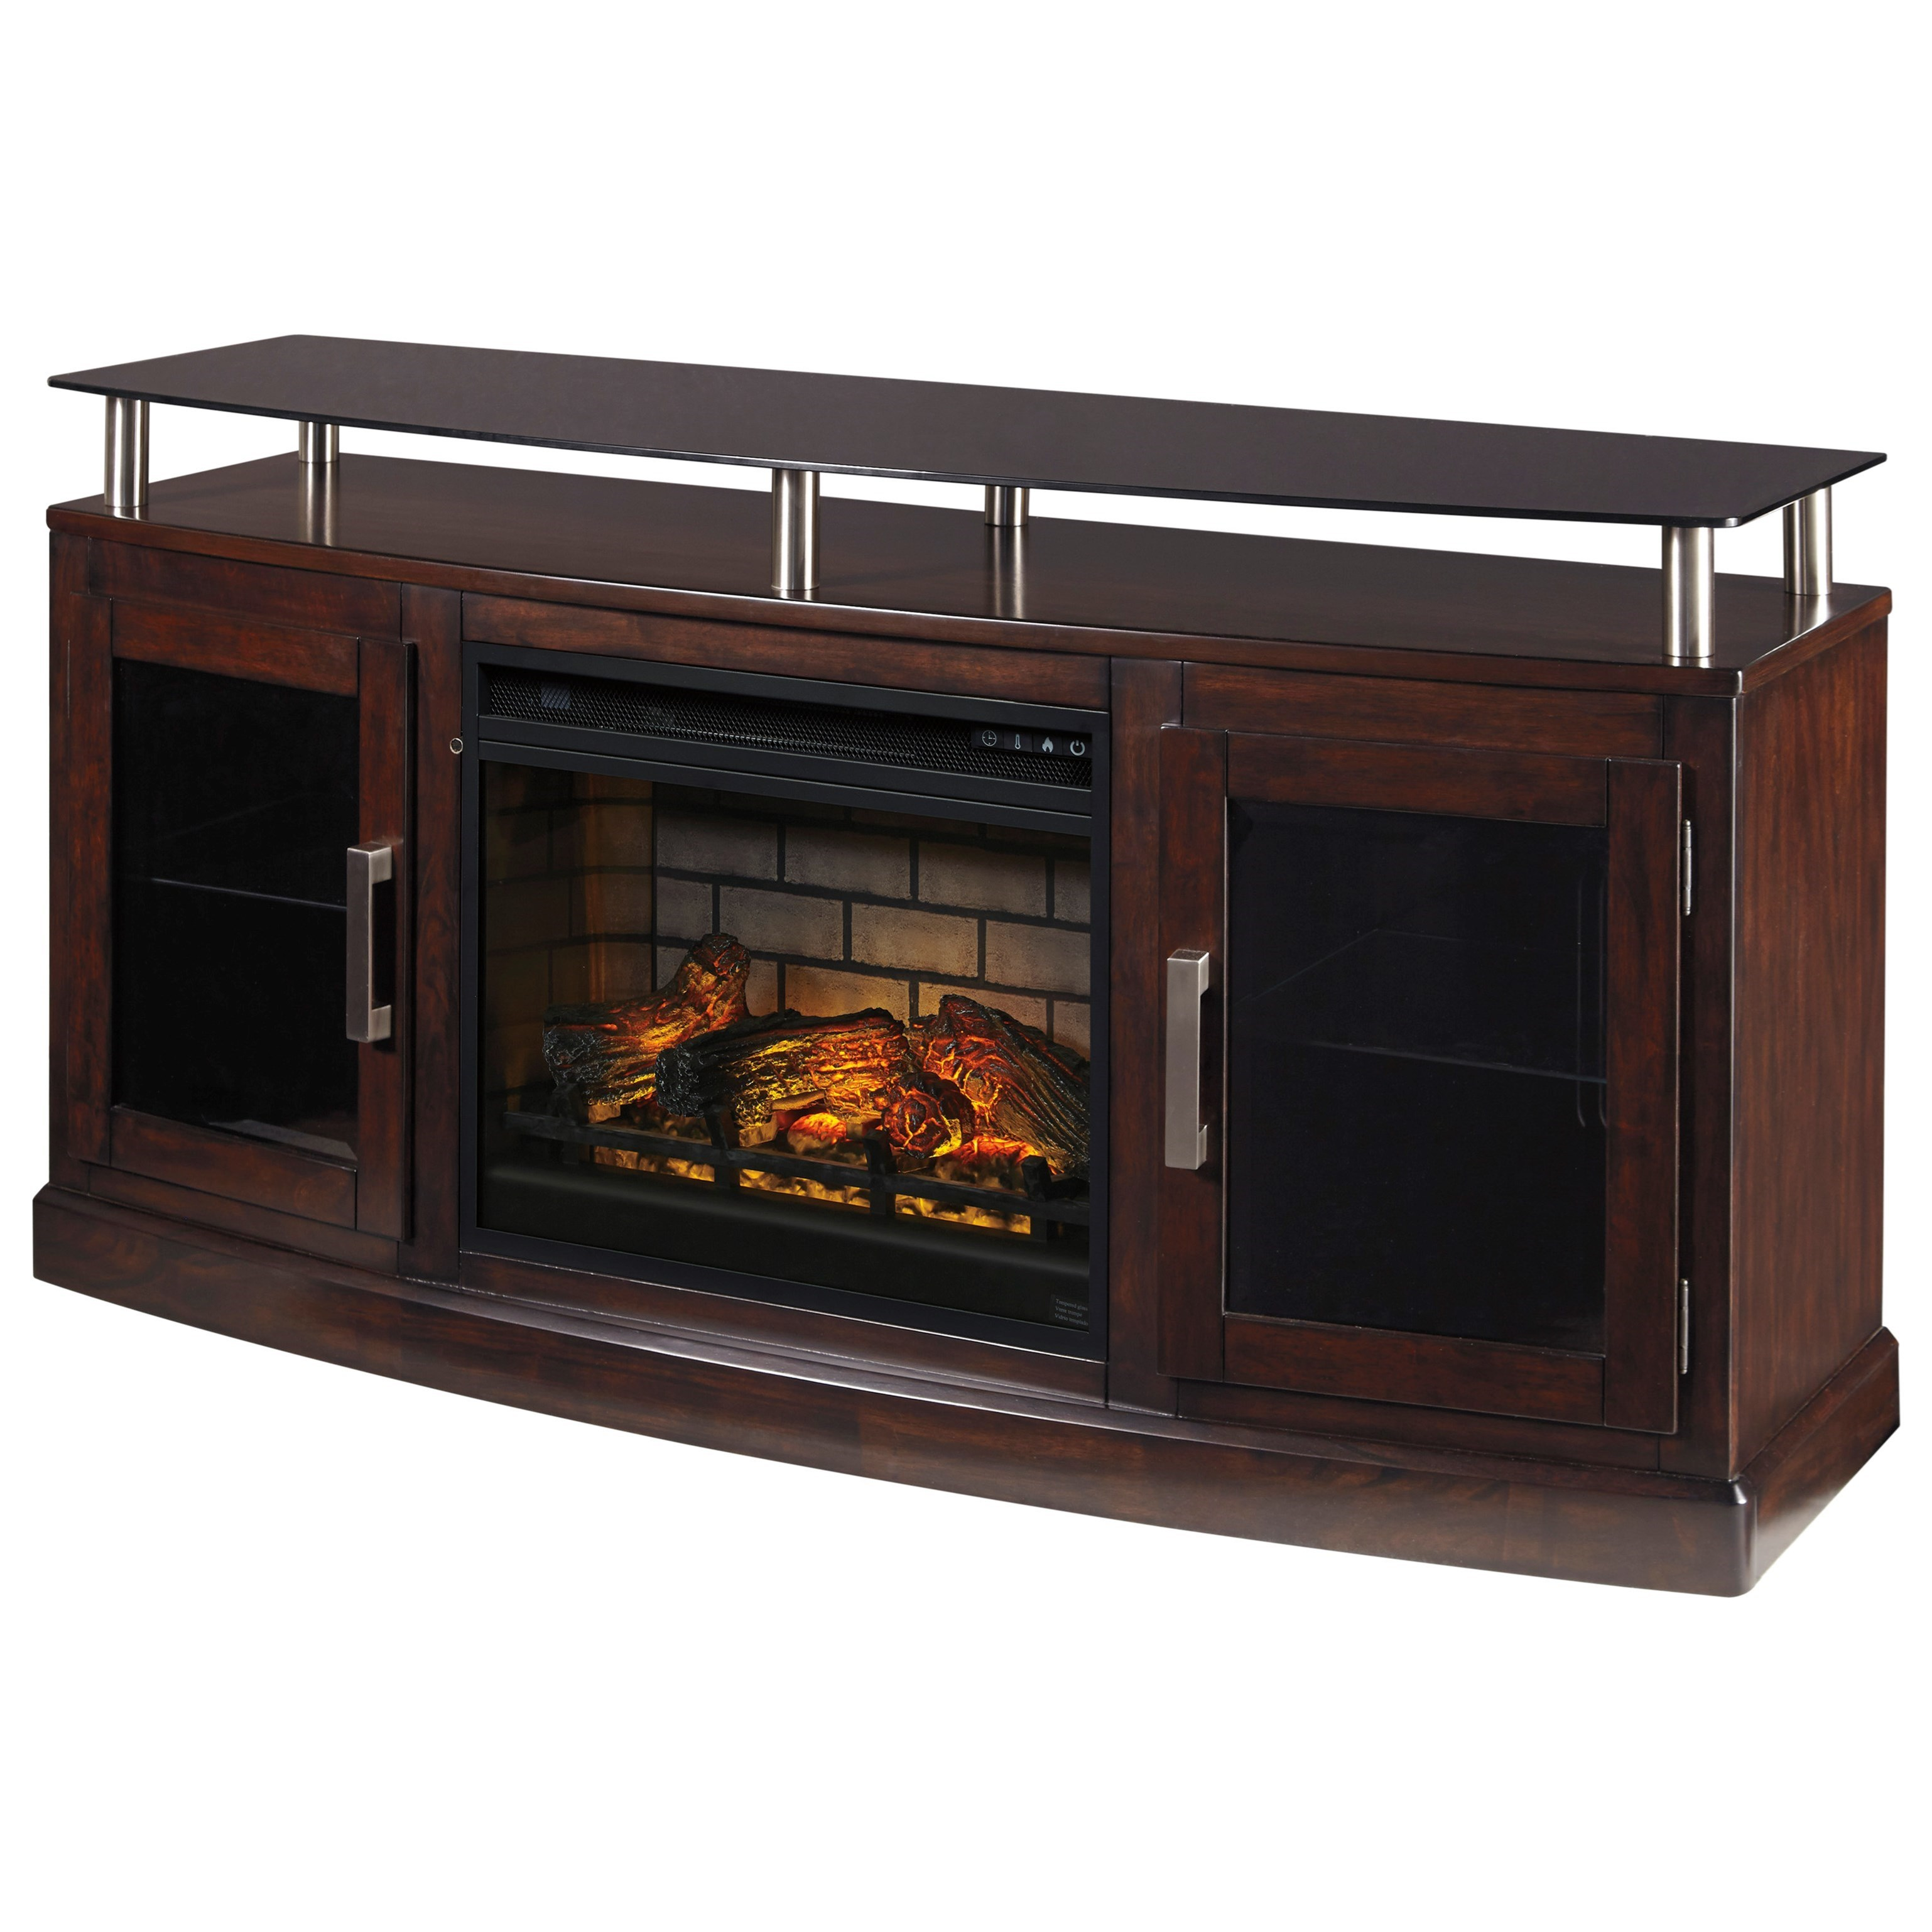 Medium TV Stand with Fireplace Insert